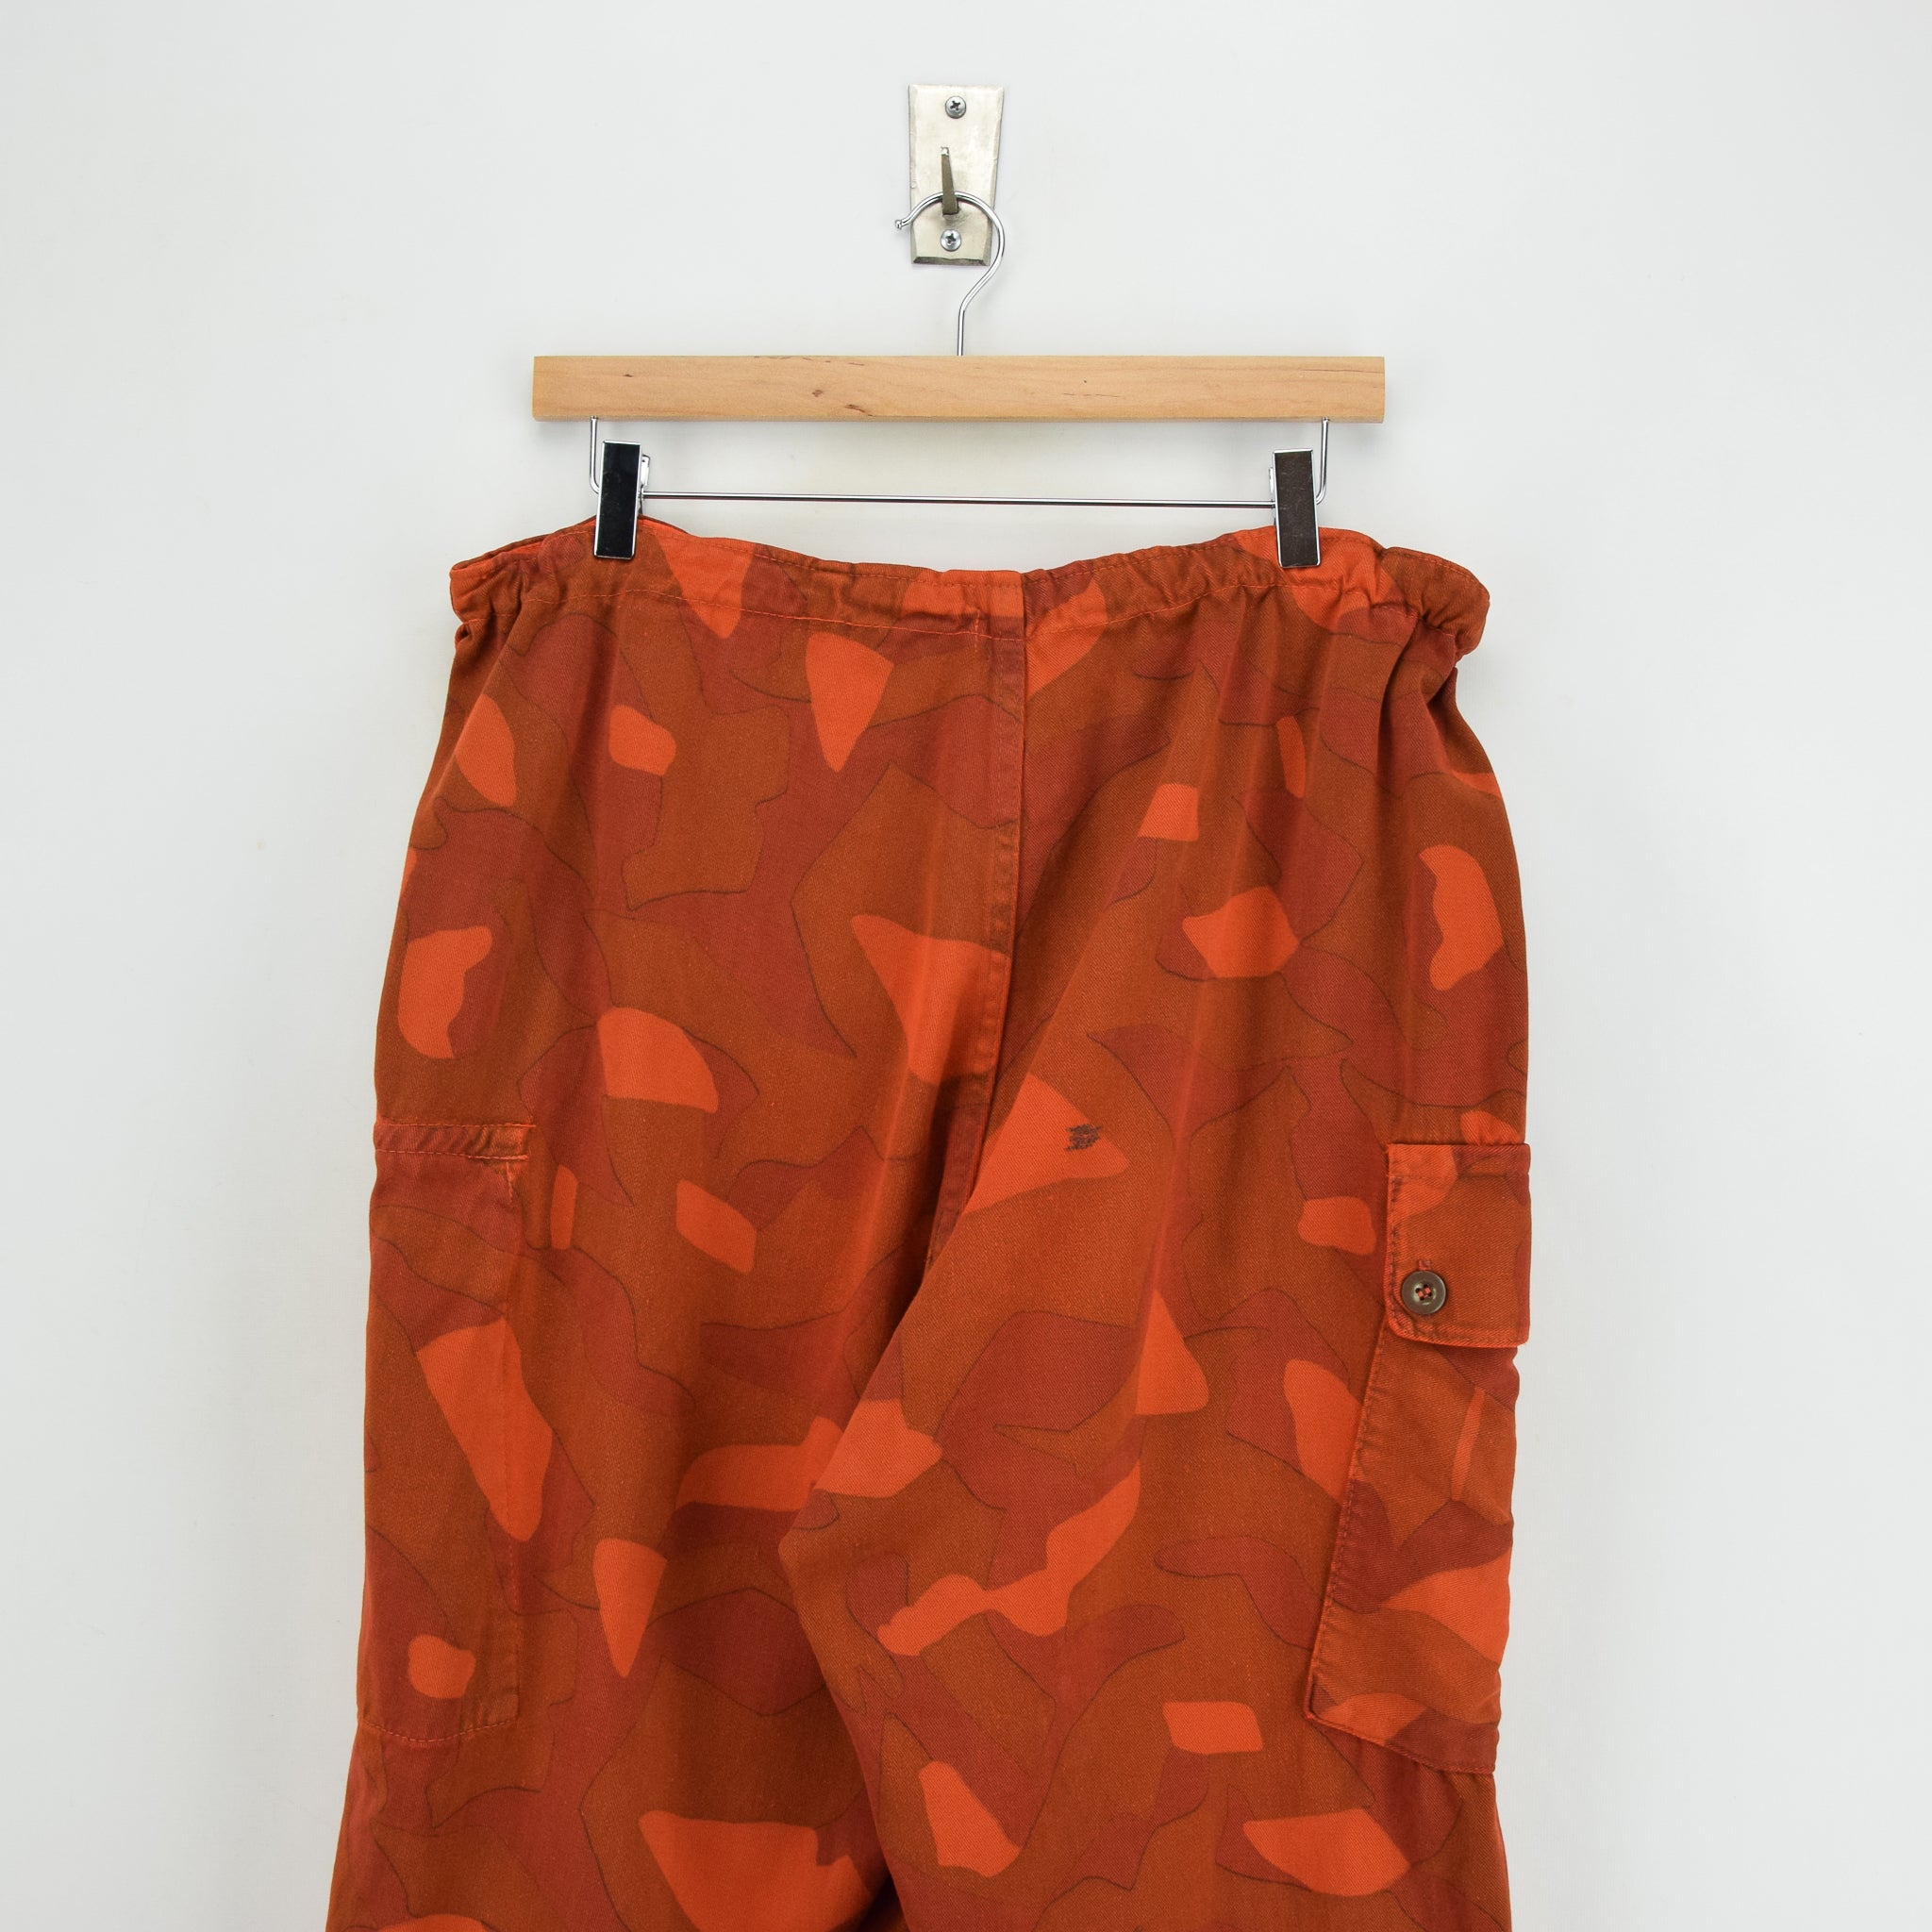 Vintage Military Finnish Army Orange Overdyed Camo Mountain Trousers 34-36 W back waist